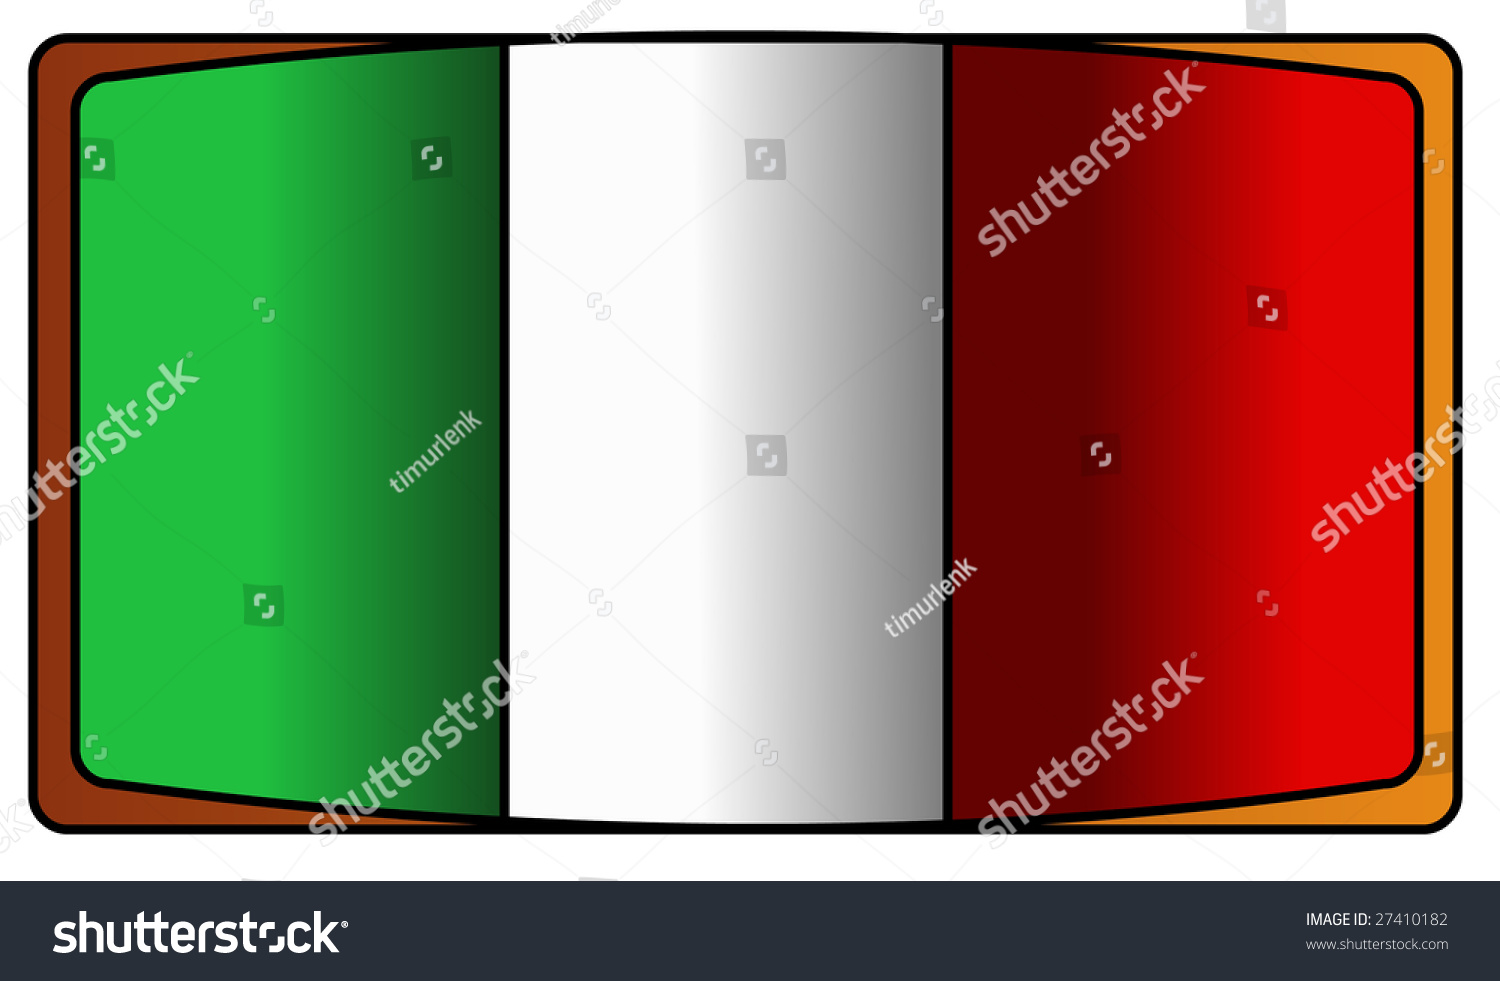 Flag italy green white red stock illustration 27410182 for Green italy